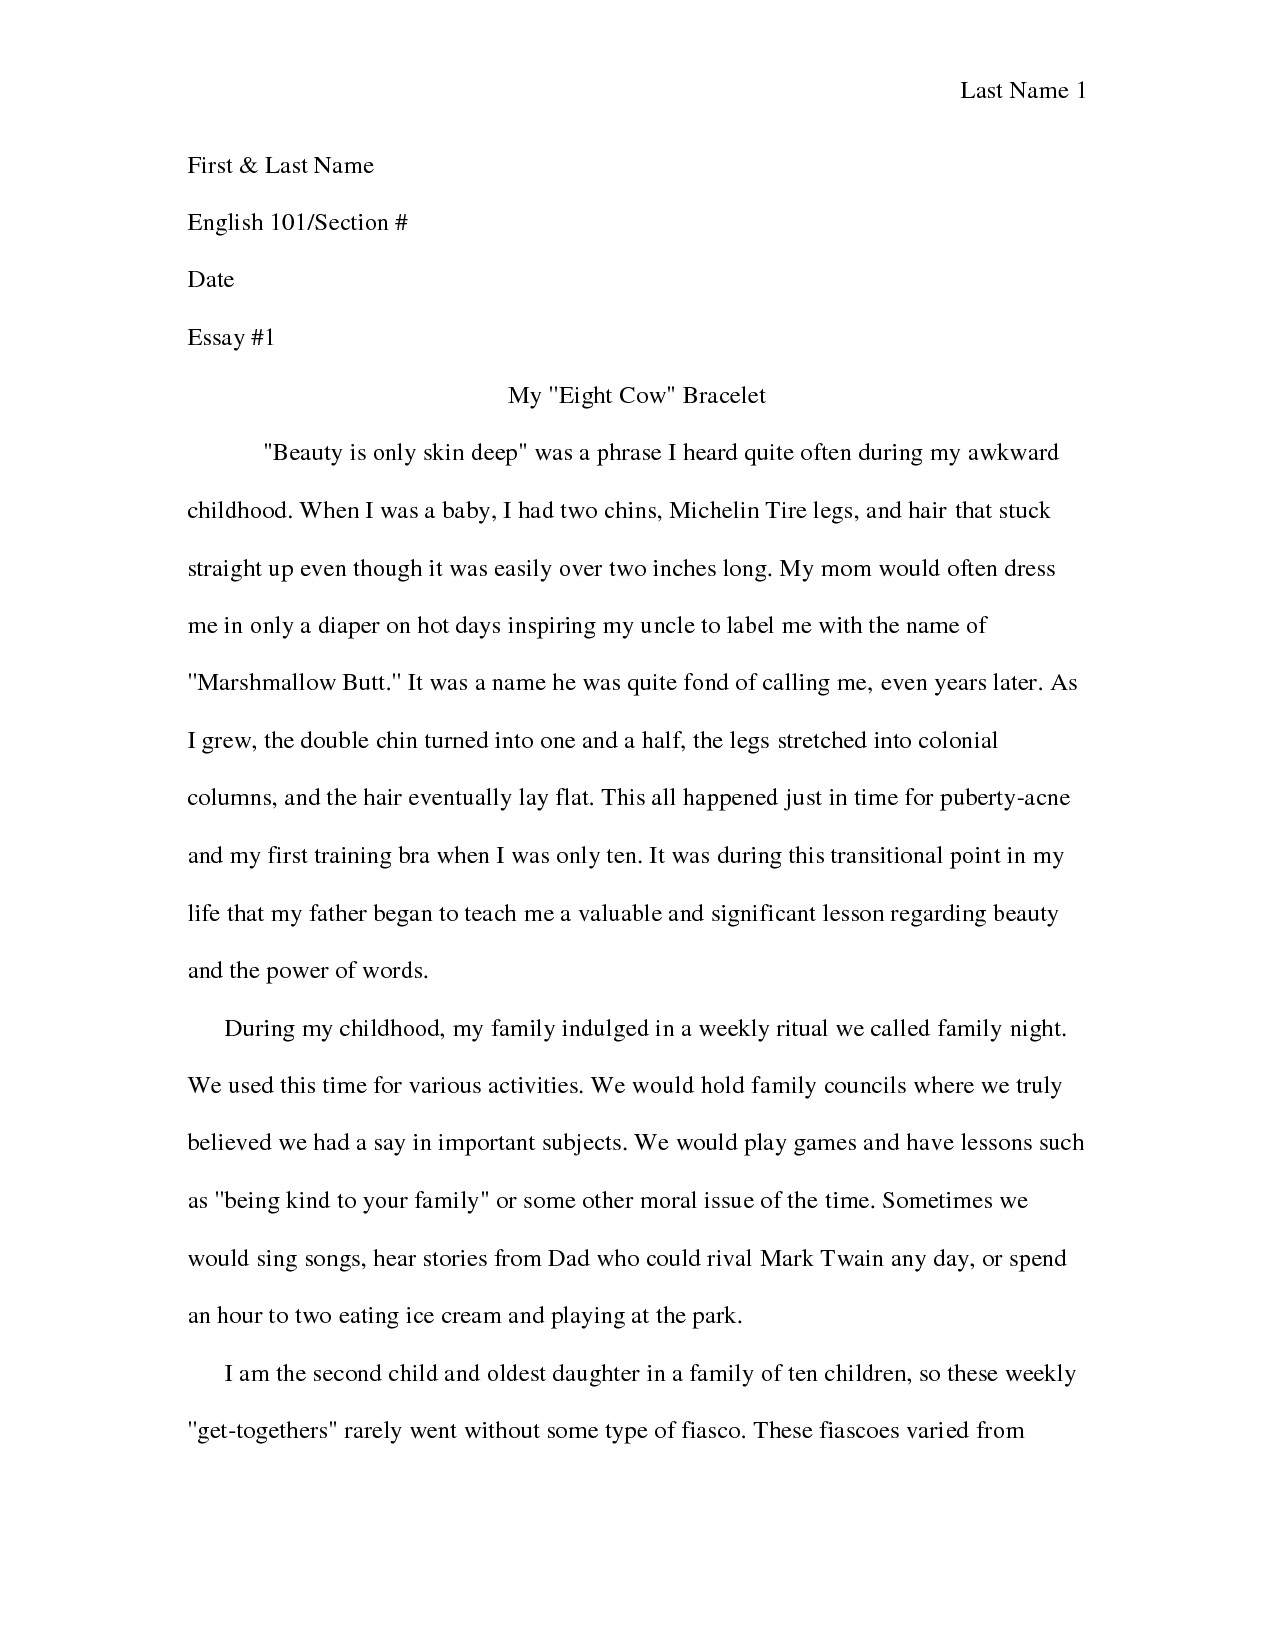 How To Write A Personal Narrative Essay - North.fourthwall.co regarding Personal Narrative Examples High School 21311